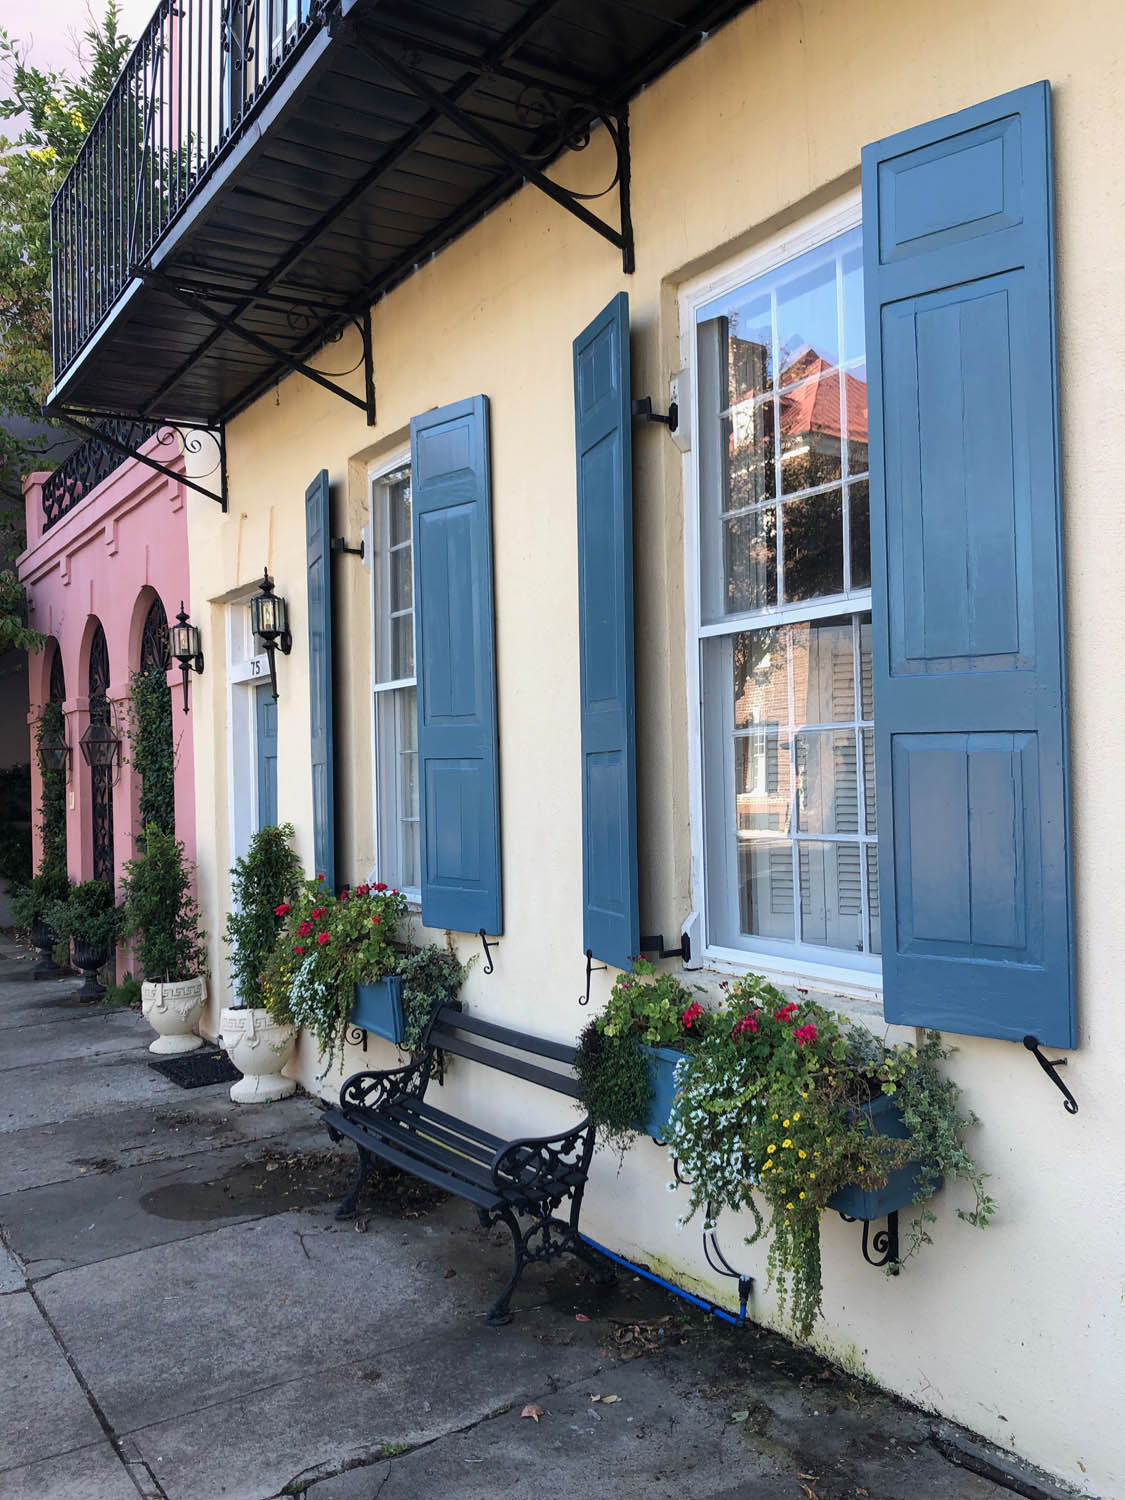 painted row houses with window boxes